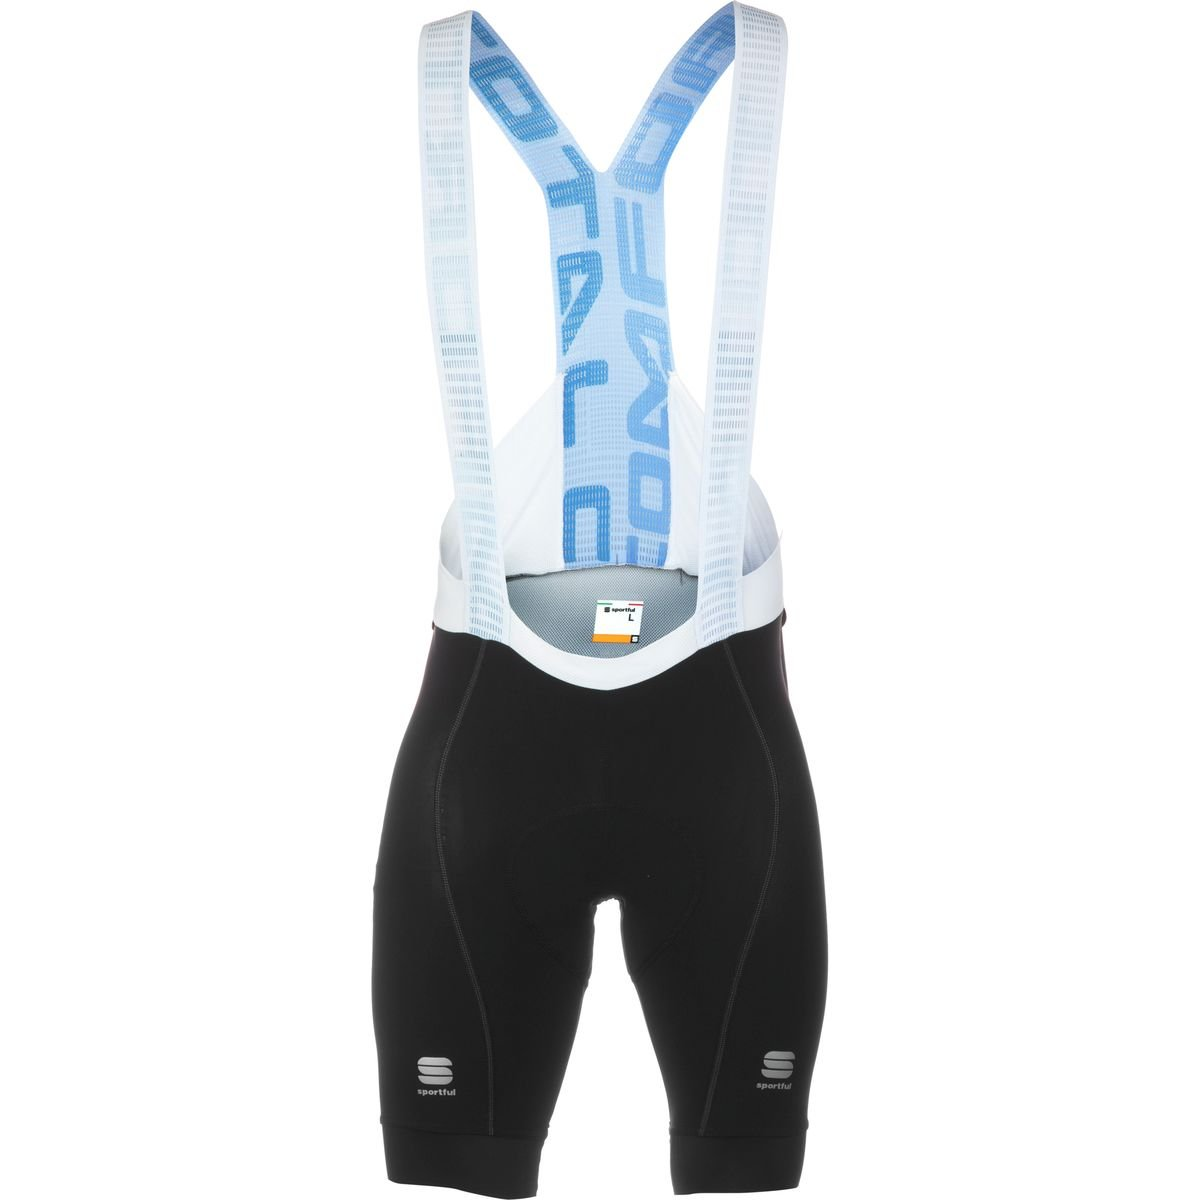 Sportful Super Total Comfort Bib Short - Men's Black, M